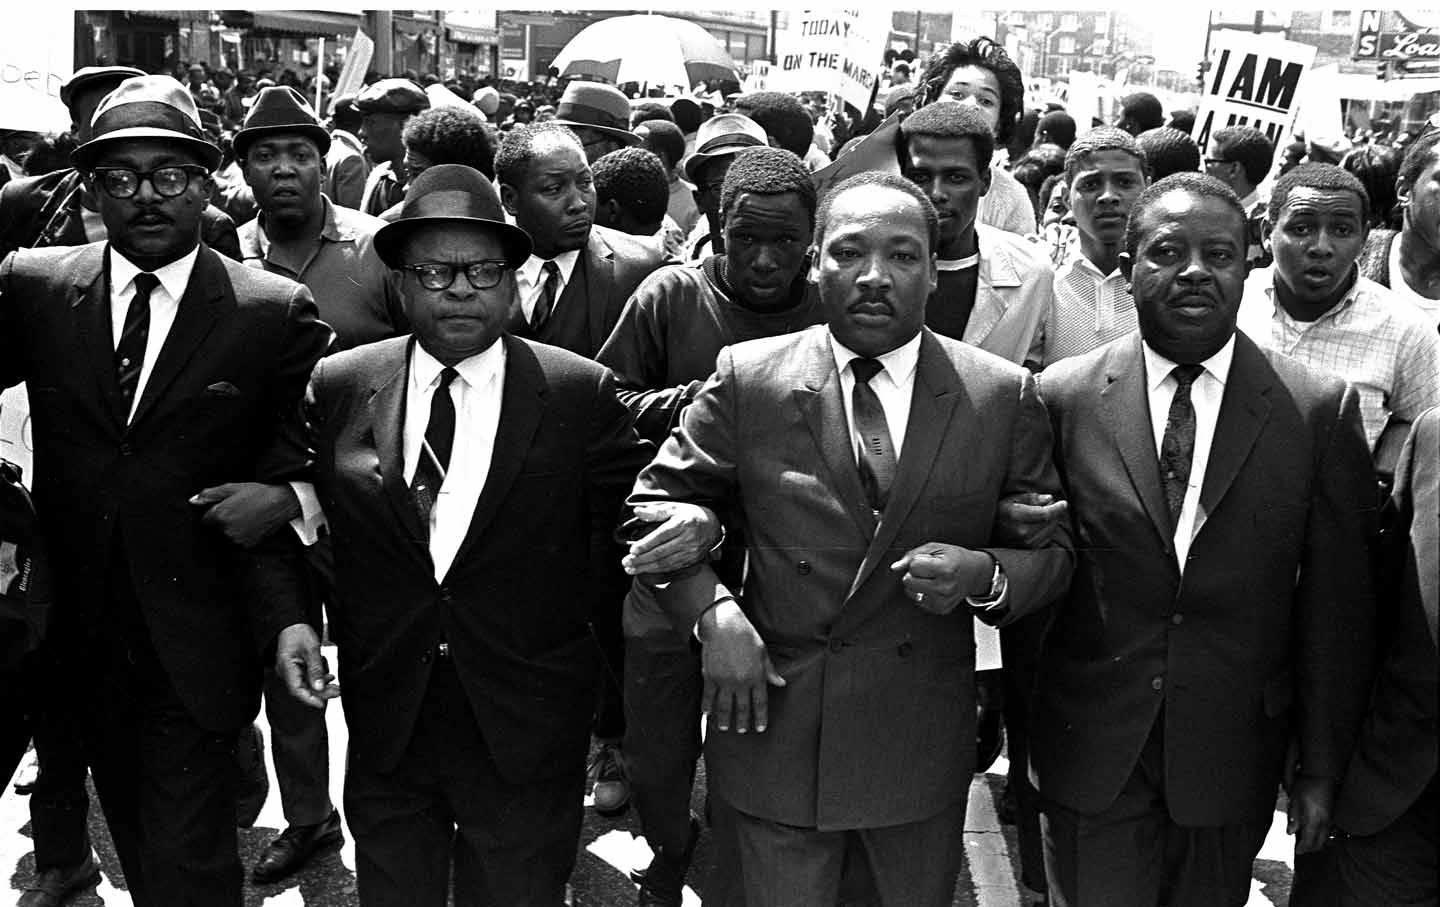 mlk_1968_marching_ap_img